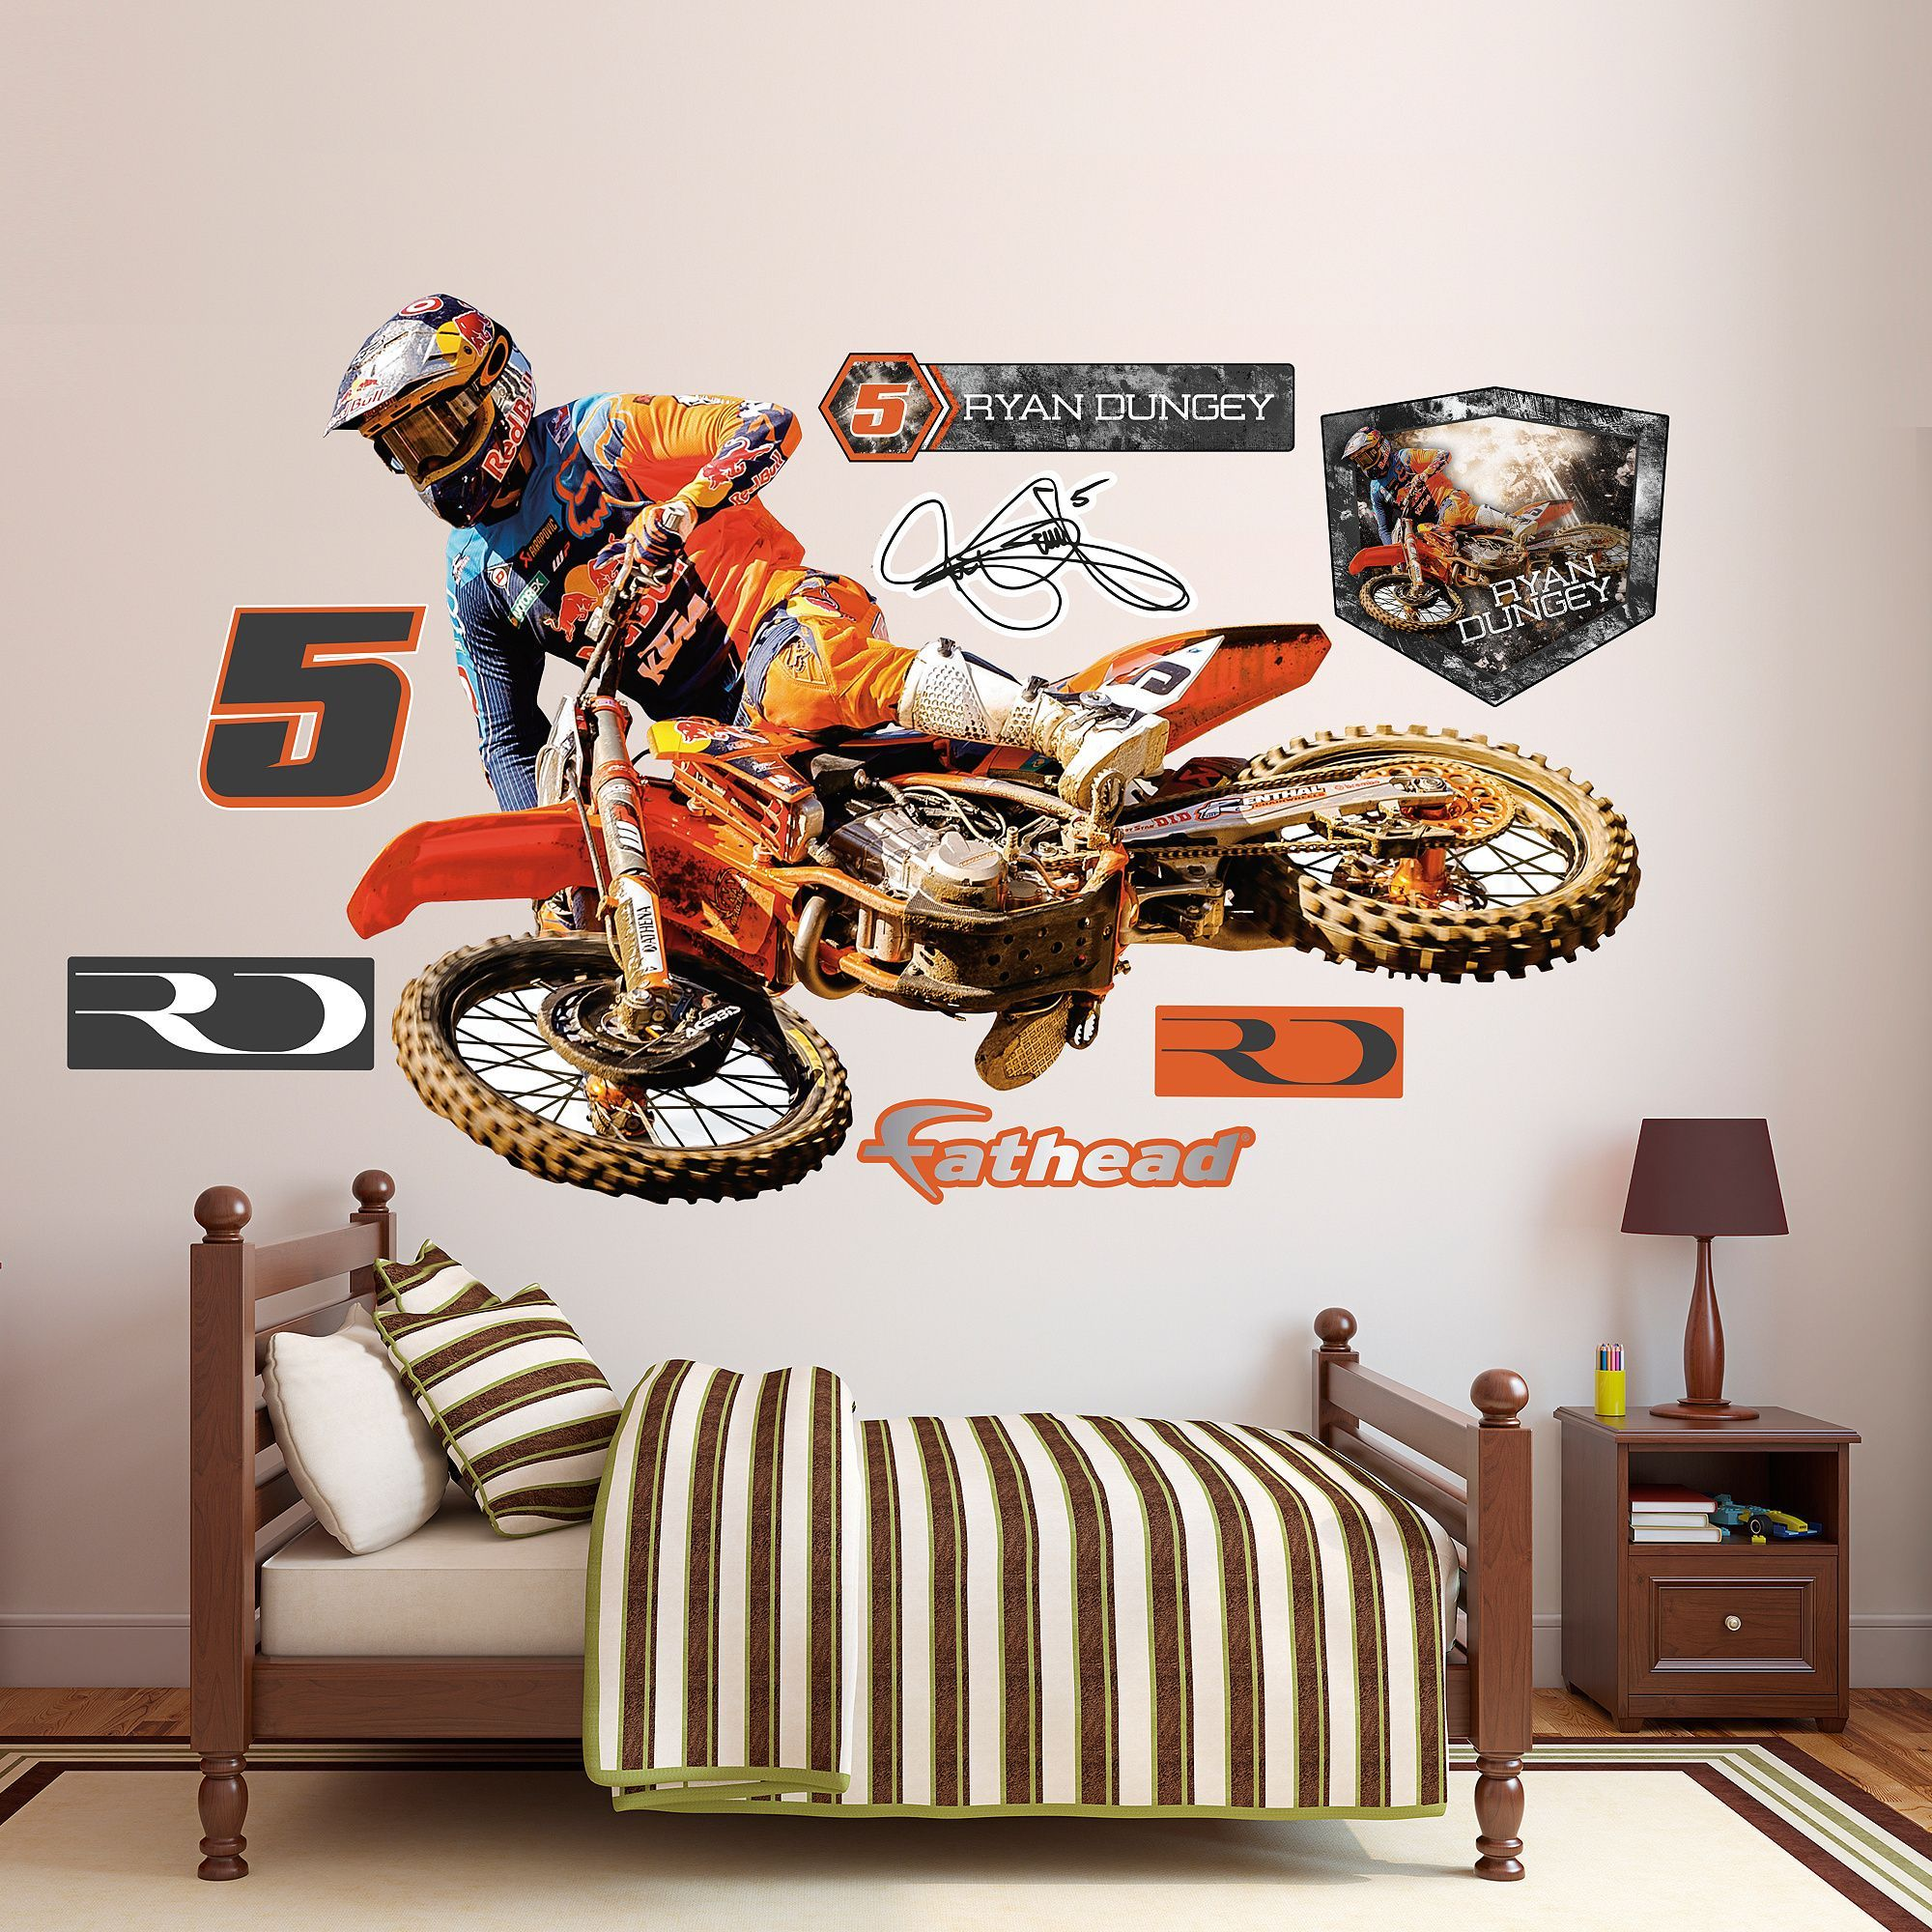 Fathead wall decals are hi definition action images that you